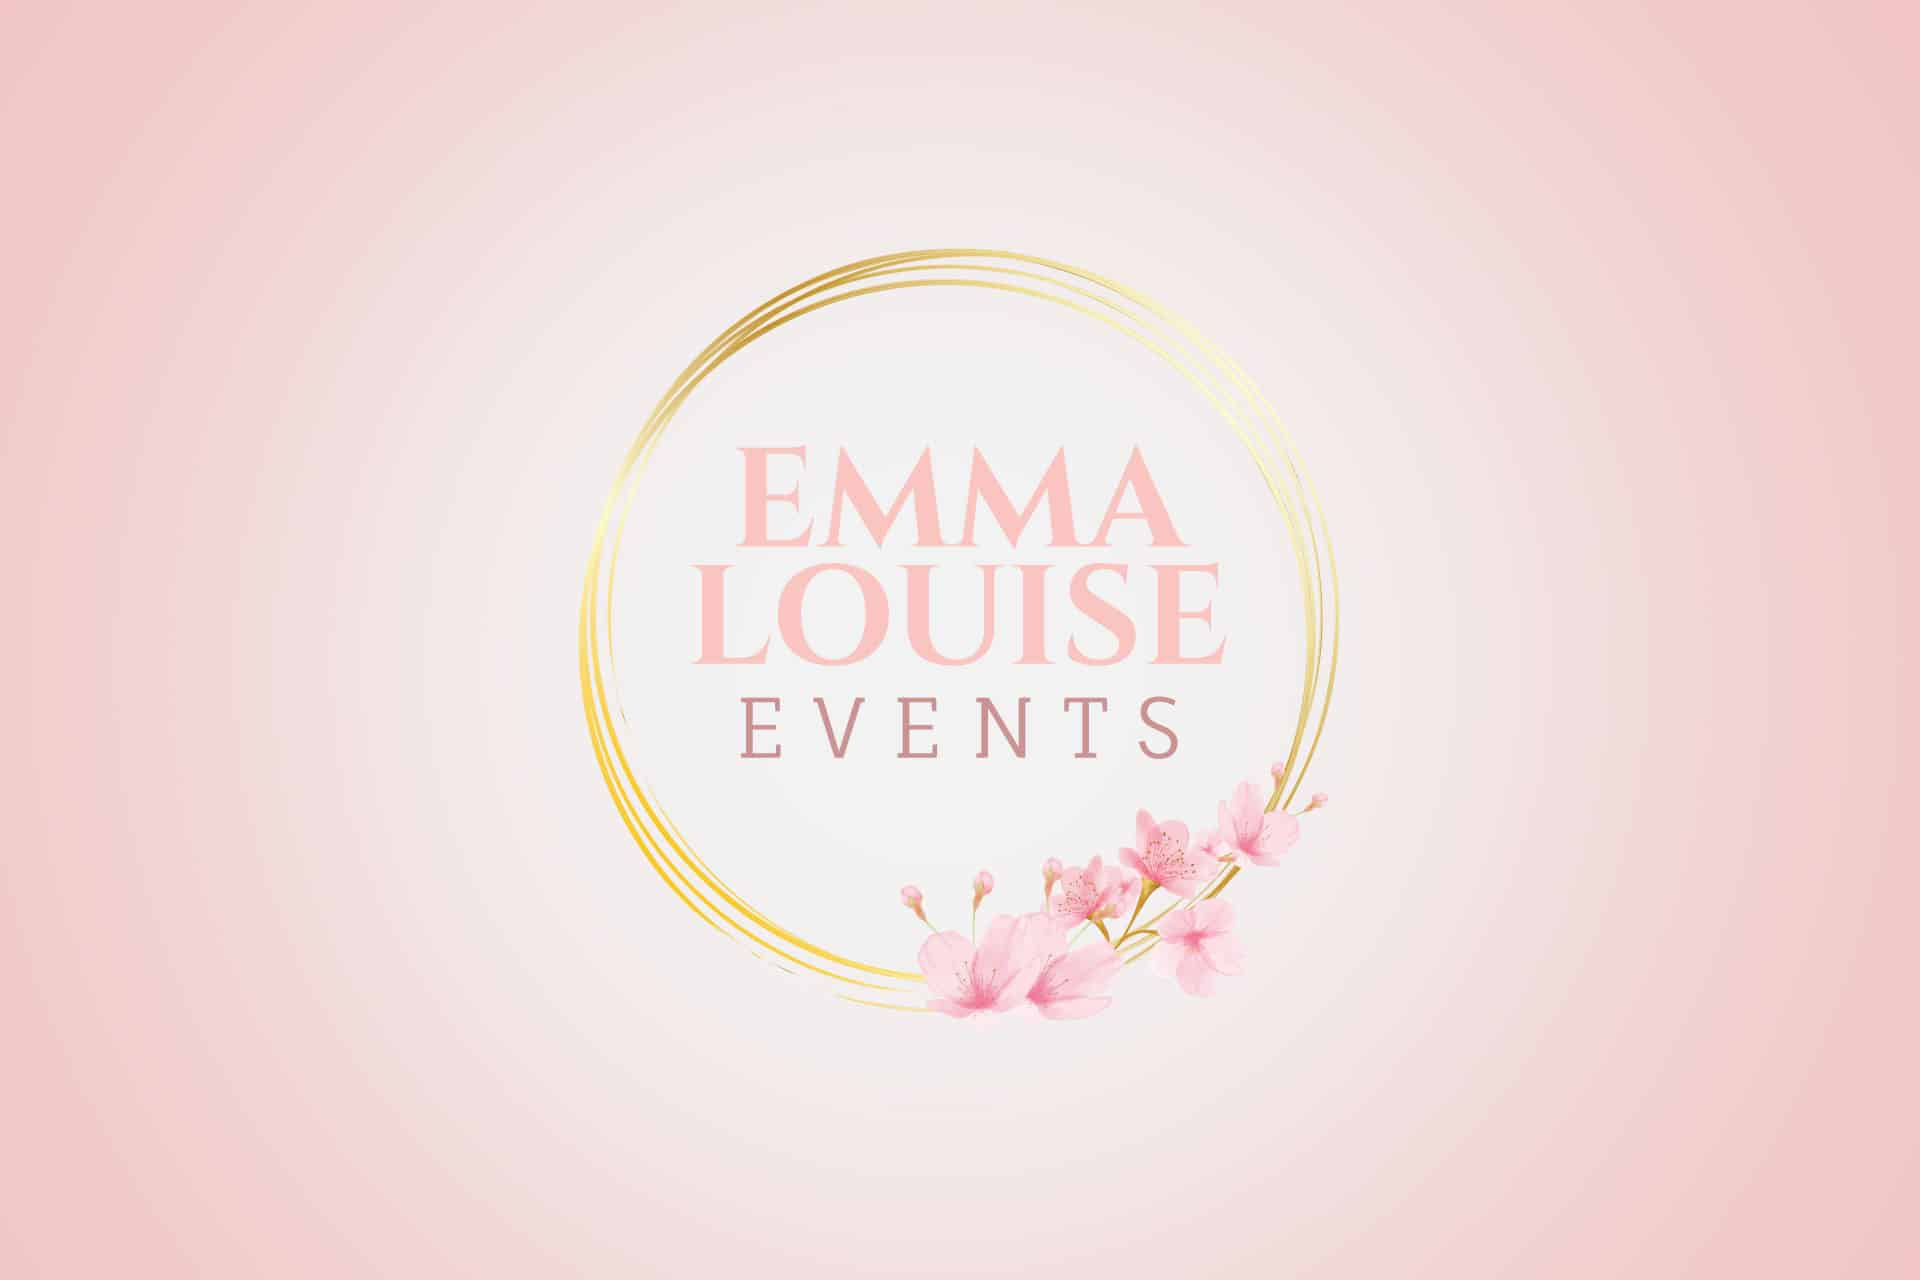 Emma Louise Events logo designed by Bulldog Snare